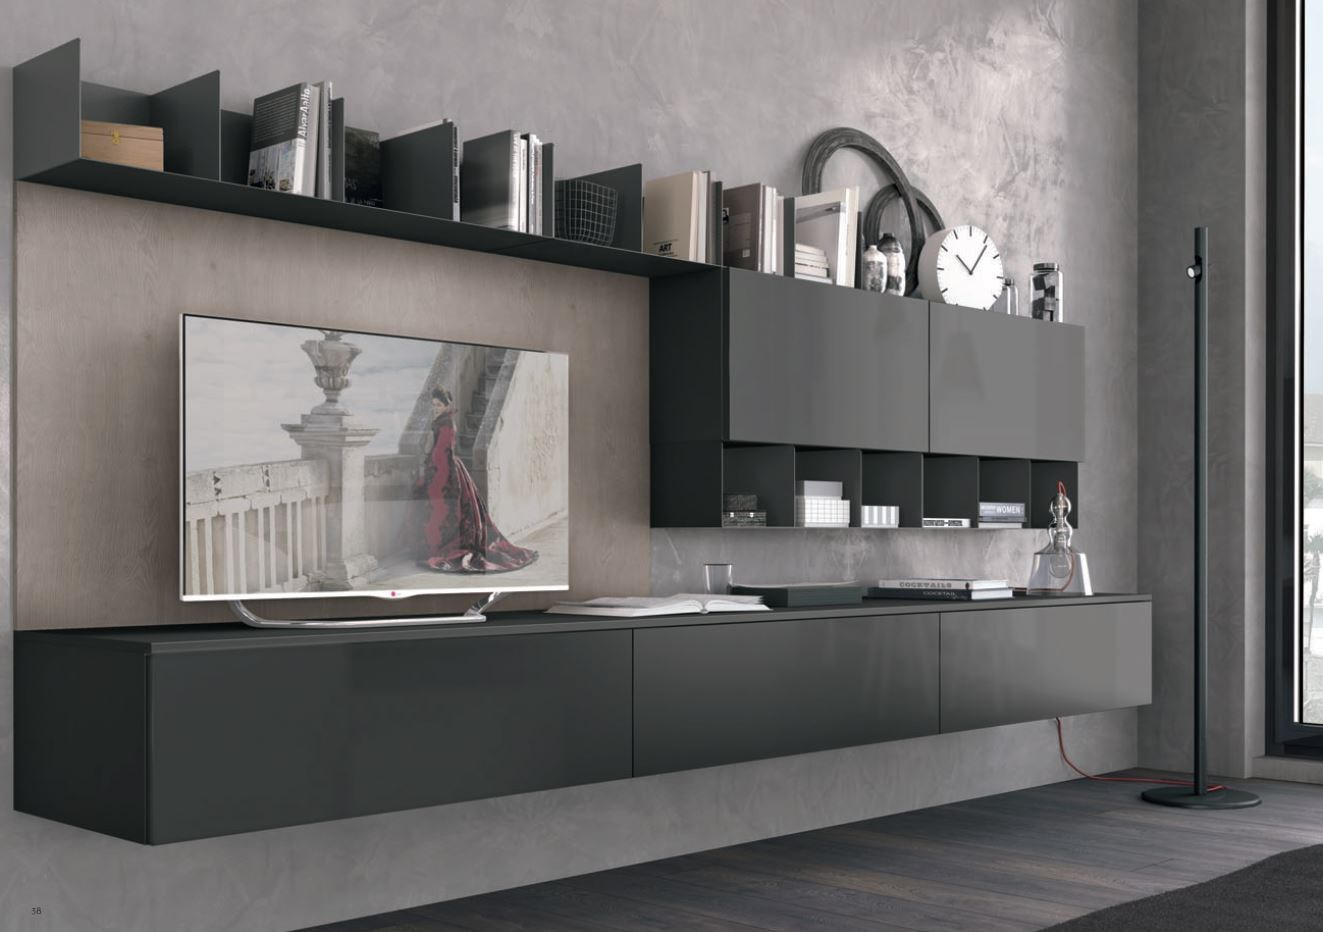 Awesome Cucine Grigio Rovere Gallery - Home Ideas - tyger.us